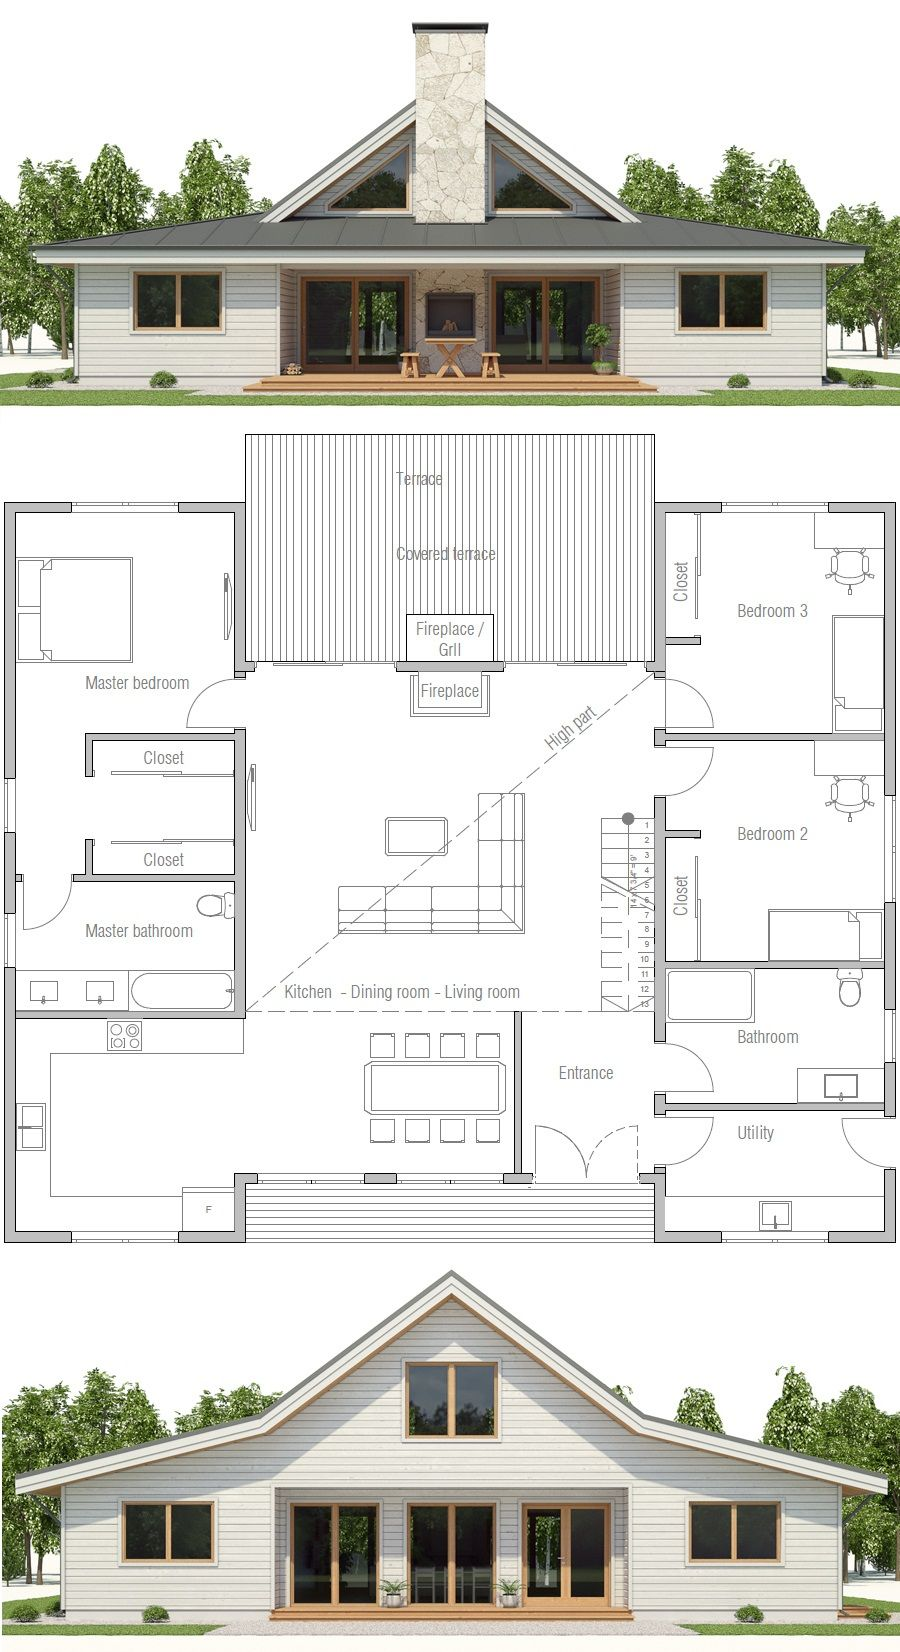 House plan ch497 ▫net area 1900 sq ft ▫gross area 2143 sq ft ▫bedrooms 3 ▫bathrooms 2 ▫floors 1